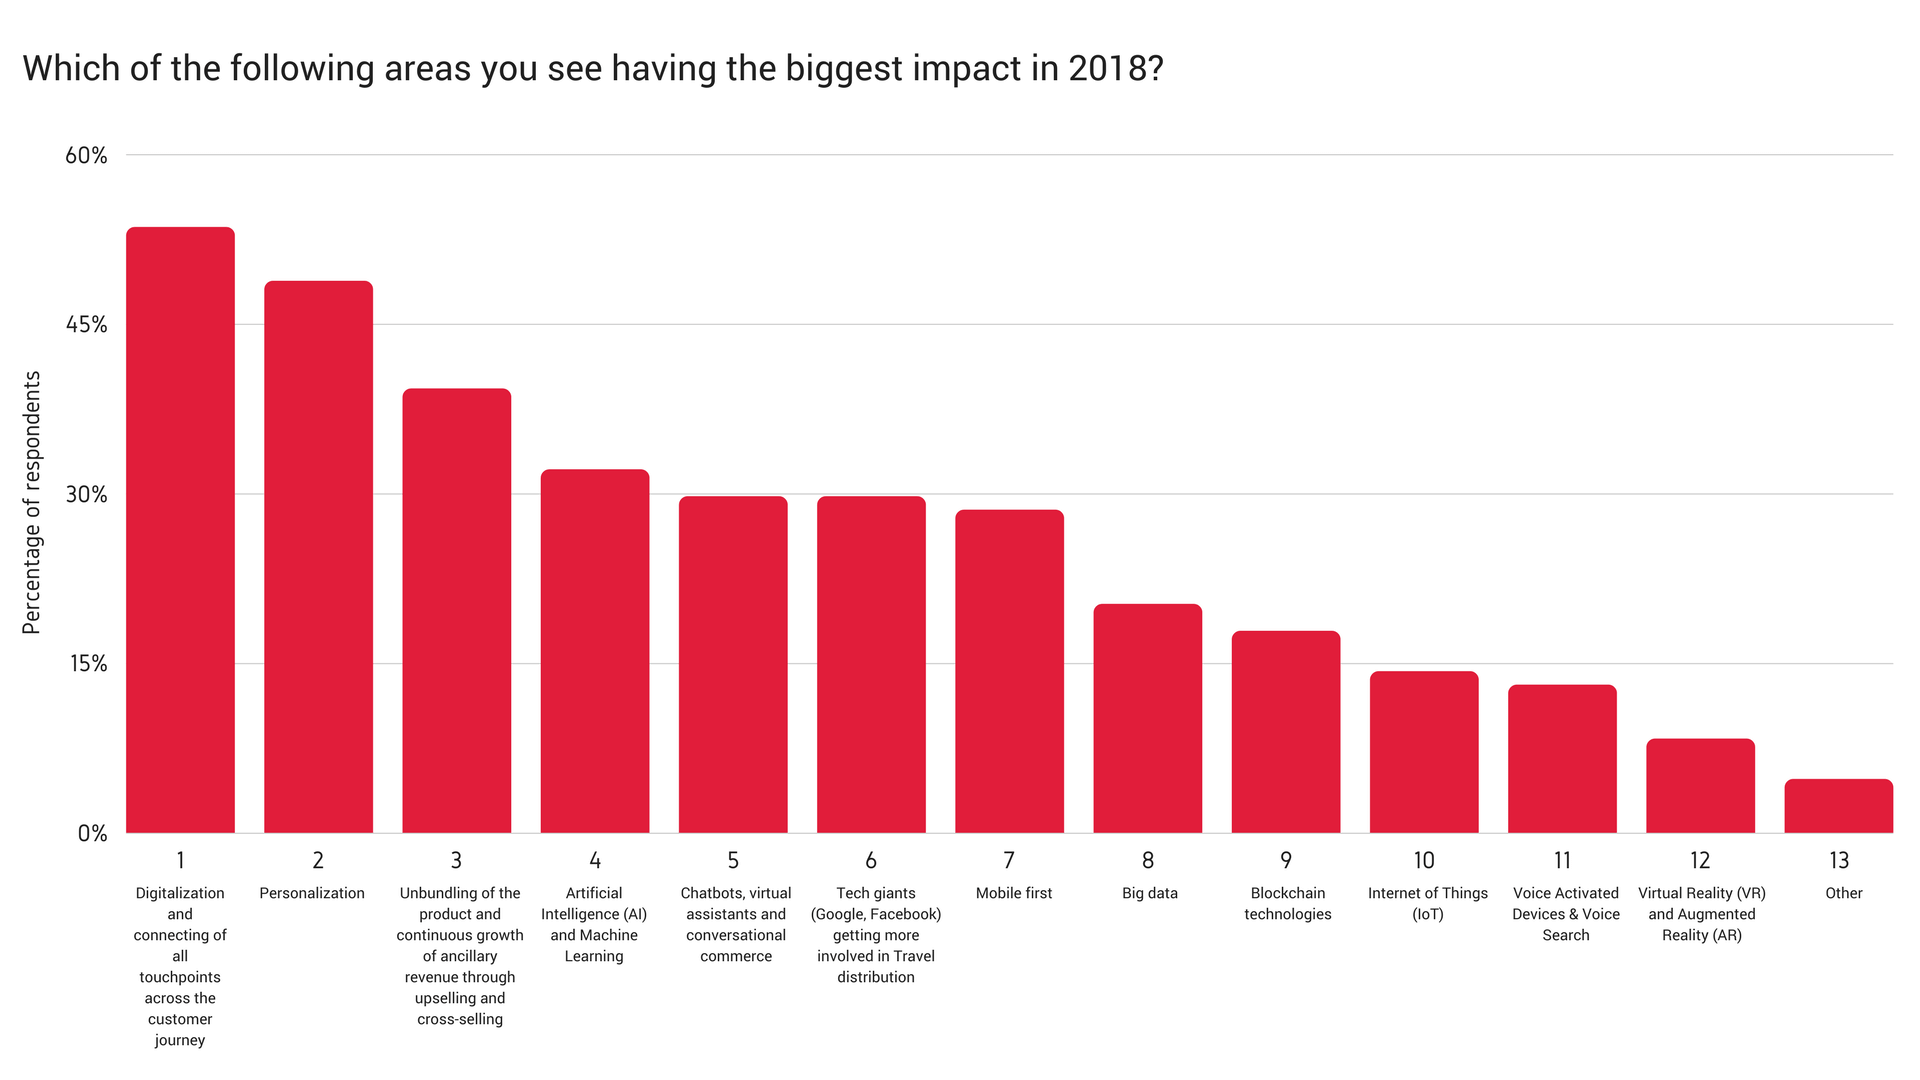 airline marketing trends 2018 question - what do you think will have biggest impact in 2018